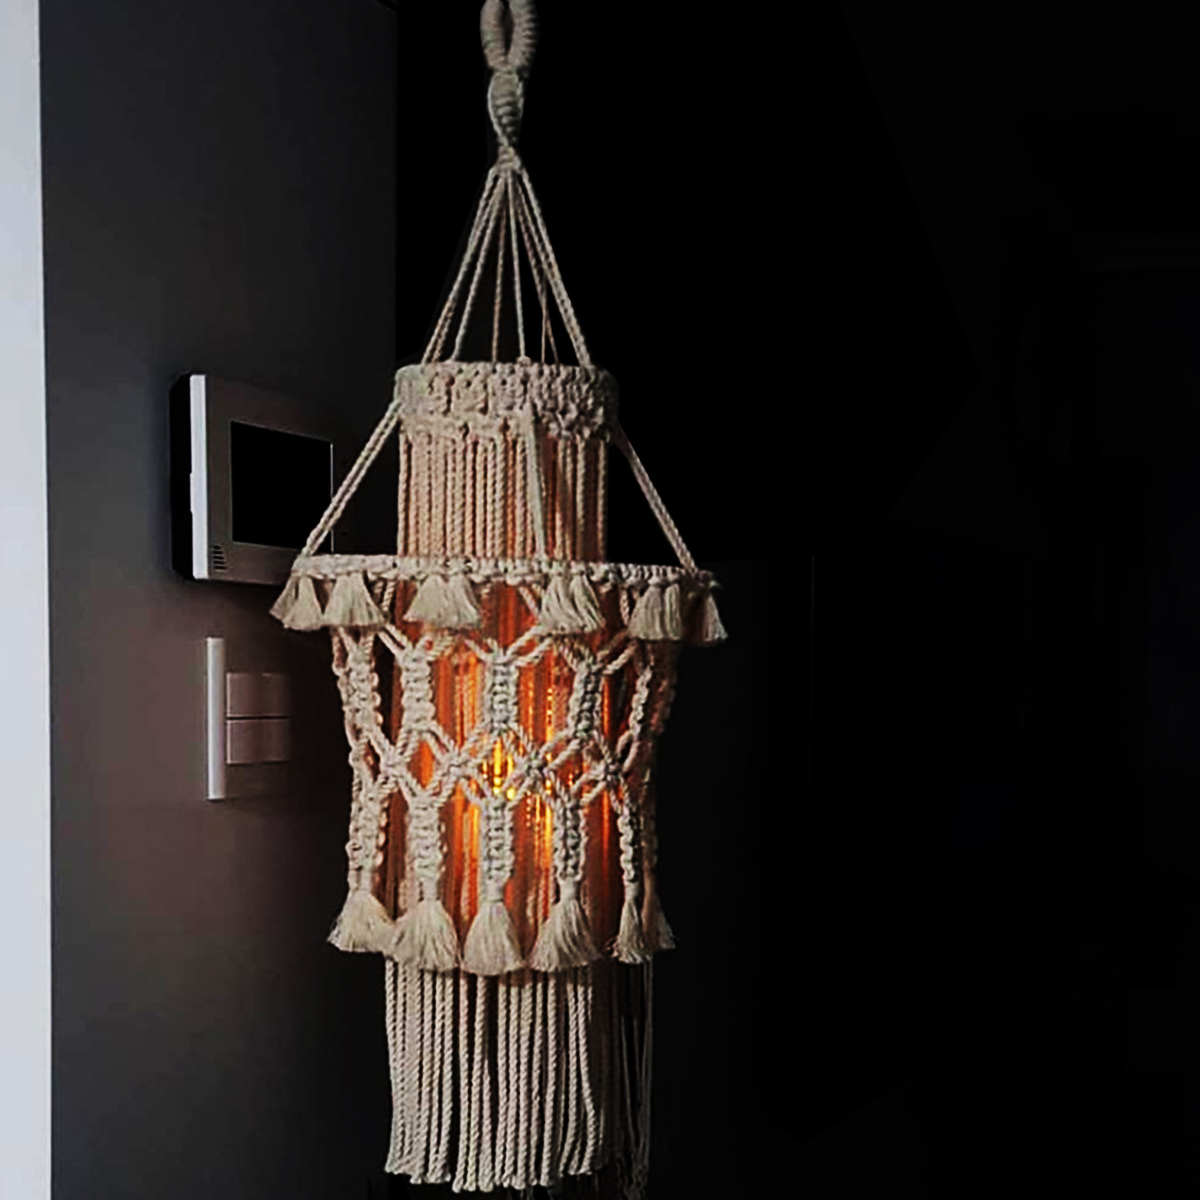 Macrame Lampshade Ceiling Pendant Light Shade Cover Boho Wedding Hanging Decor Ebay